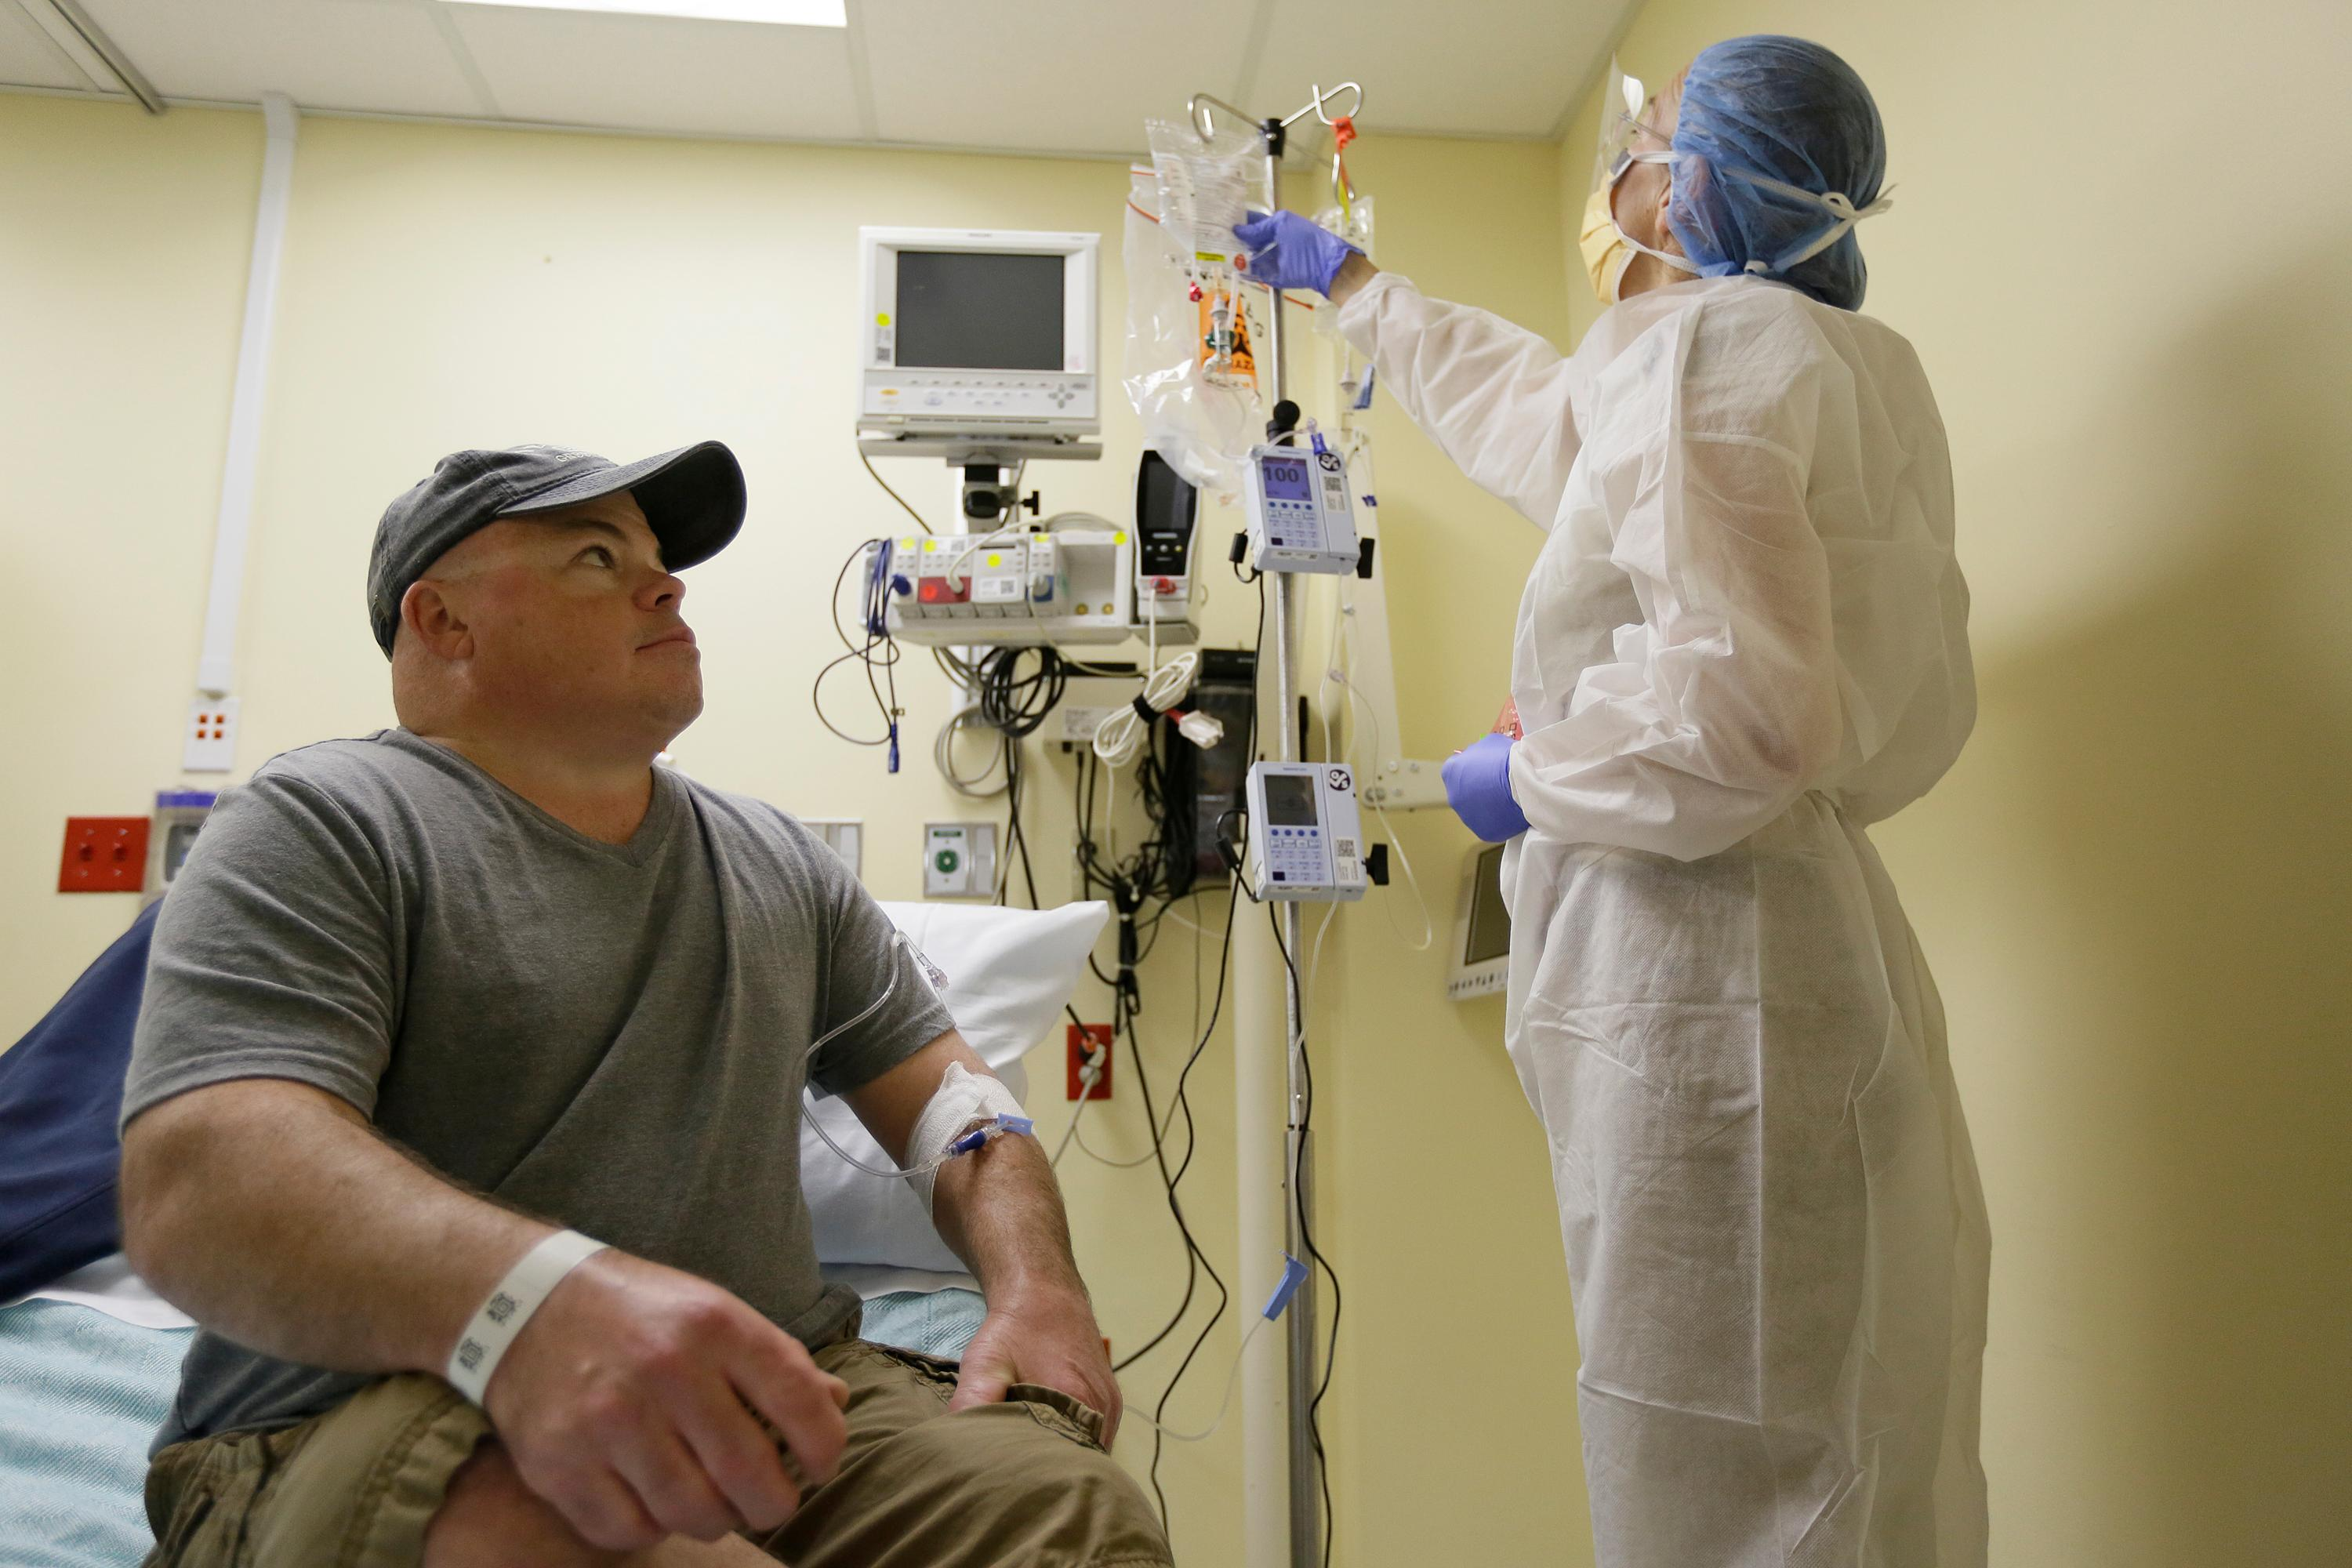 In this photo taken Monday, Nov. 13, 2017, Brian Madeux, 44, looks up at nurse practitioner Jacqueline Madde while receiving the first human gene editing therapy at the UCSF Benioff Children's Hospital in Oakland, Calif.  Madeux, who has a metabolic disease called Hunter syndrome, will receive billions of copies of a corrective gene and a genetic tool, through an IV,  to cut his DNA in a precise spot. (AP Photo/Eric Risberg)